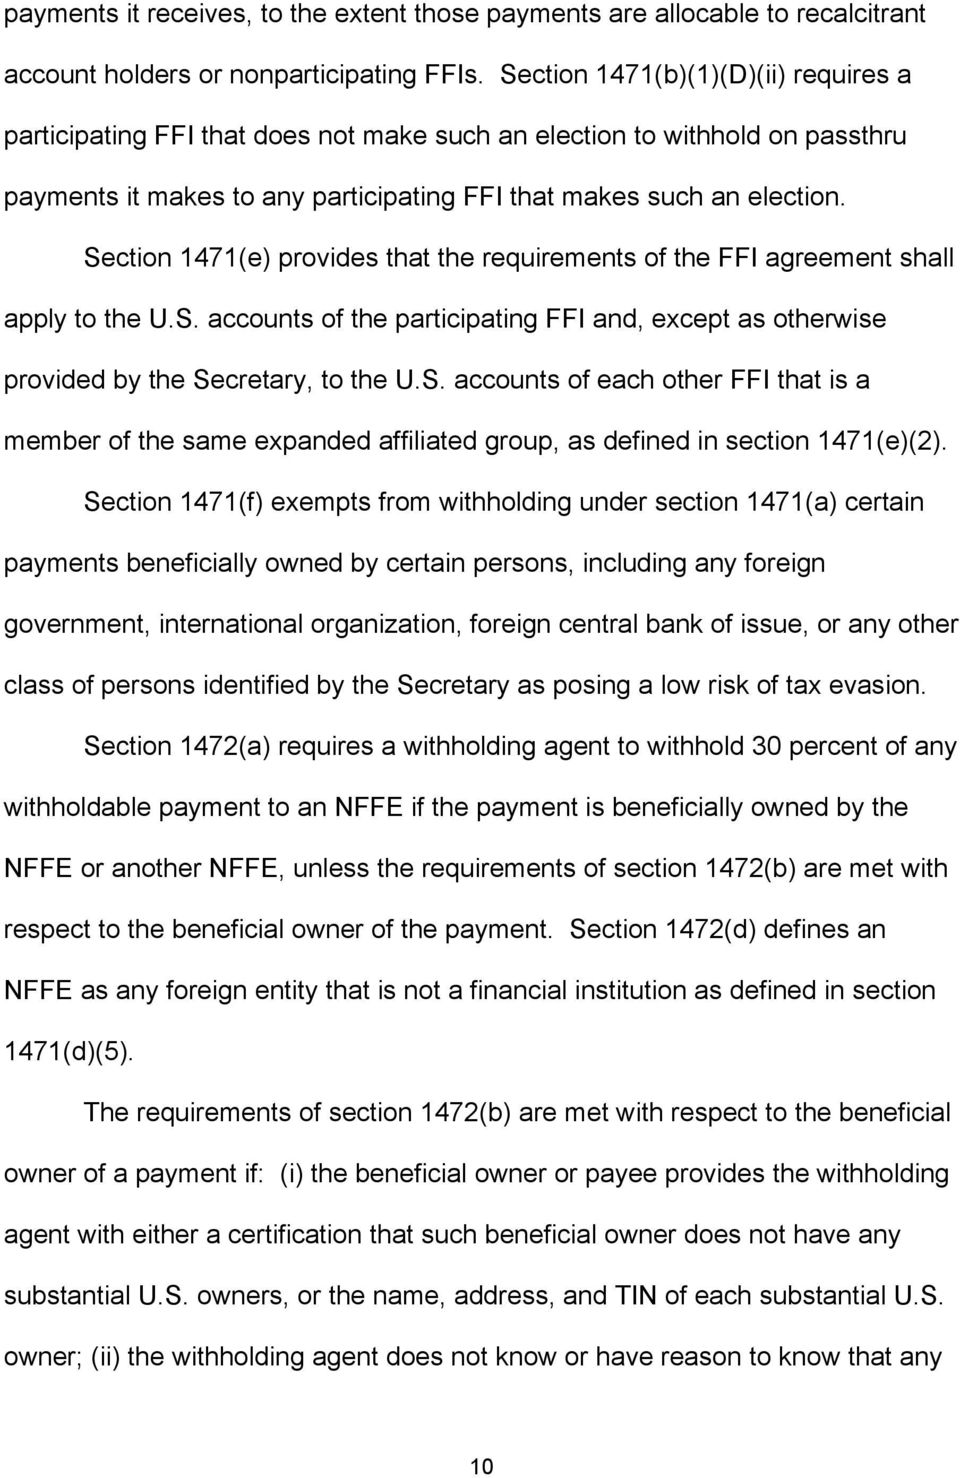 Section 1471(e) provides that the requirements of the FFI agreement shall apply to the U.S. accounts of the participating FFI and, except as otherwise provided by the Secretary, to the U.S. accounts of each other FFI that is a member of the same expanded affiliated group, as defined in section 1471(e)(2).